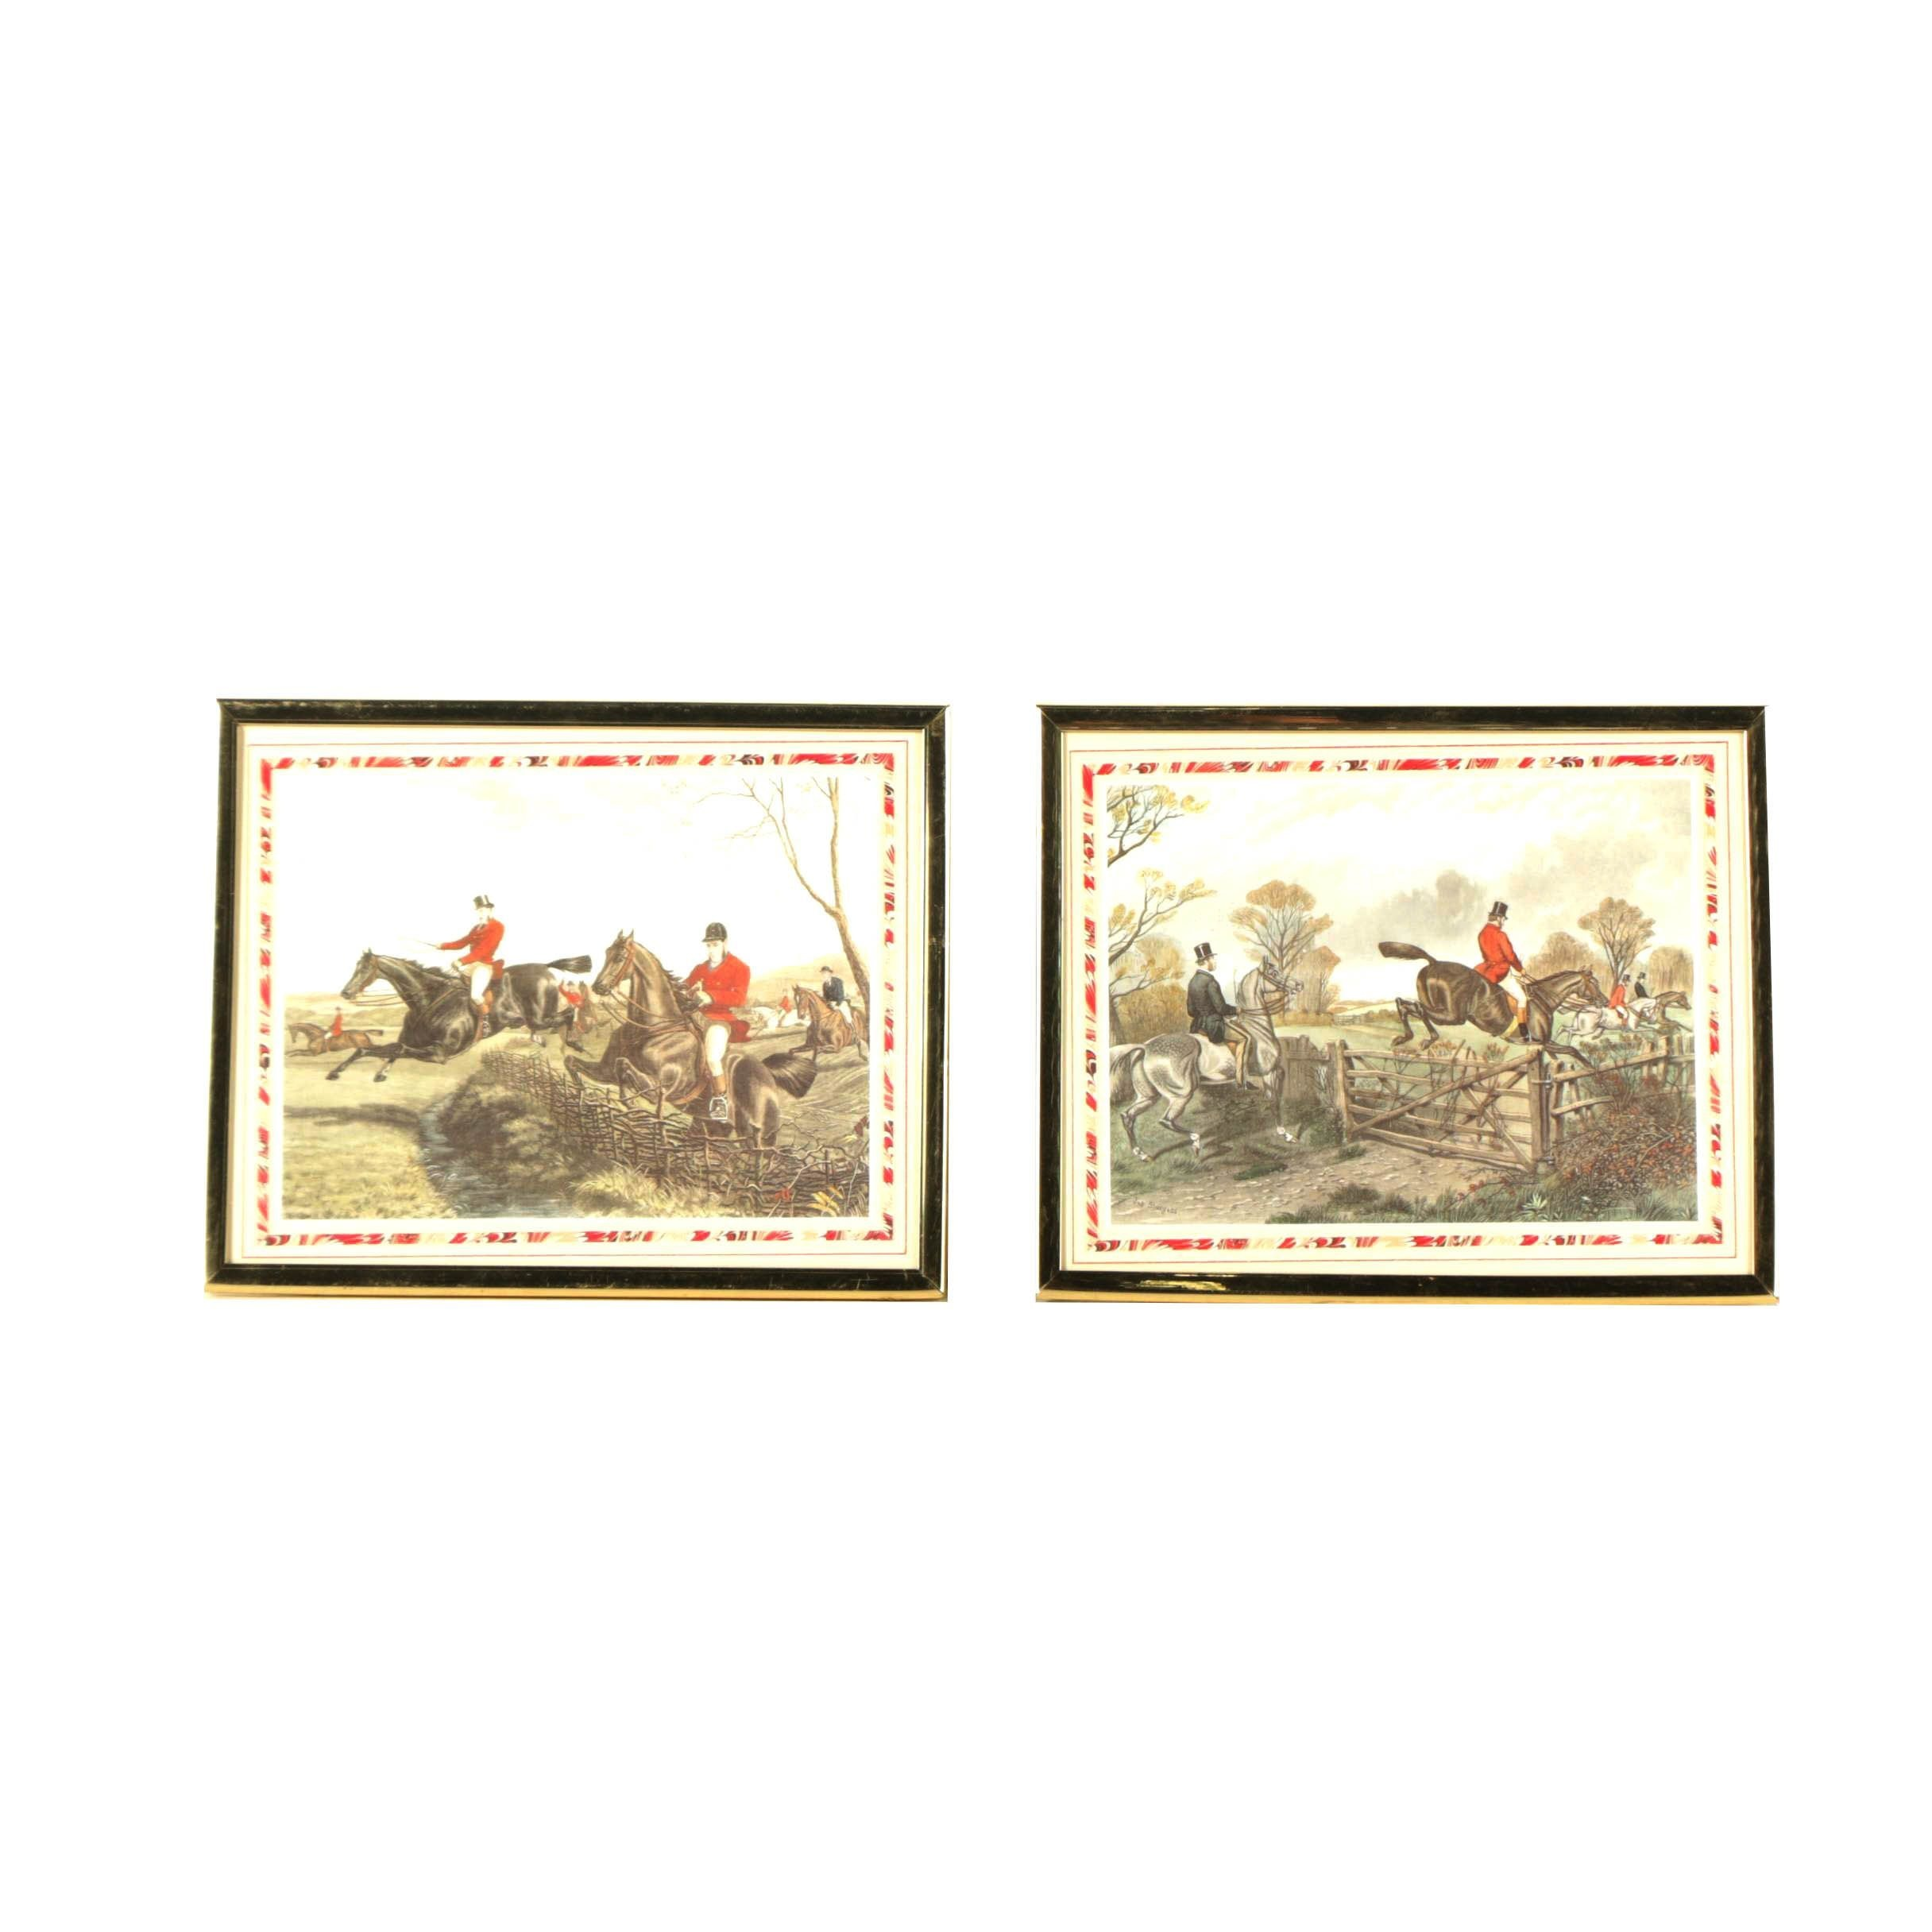 Offset Lithographs After Sheldon Williams and J. Sturgess of Hunt Scenes